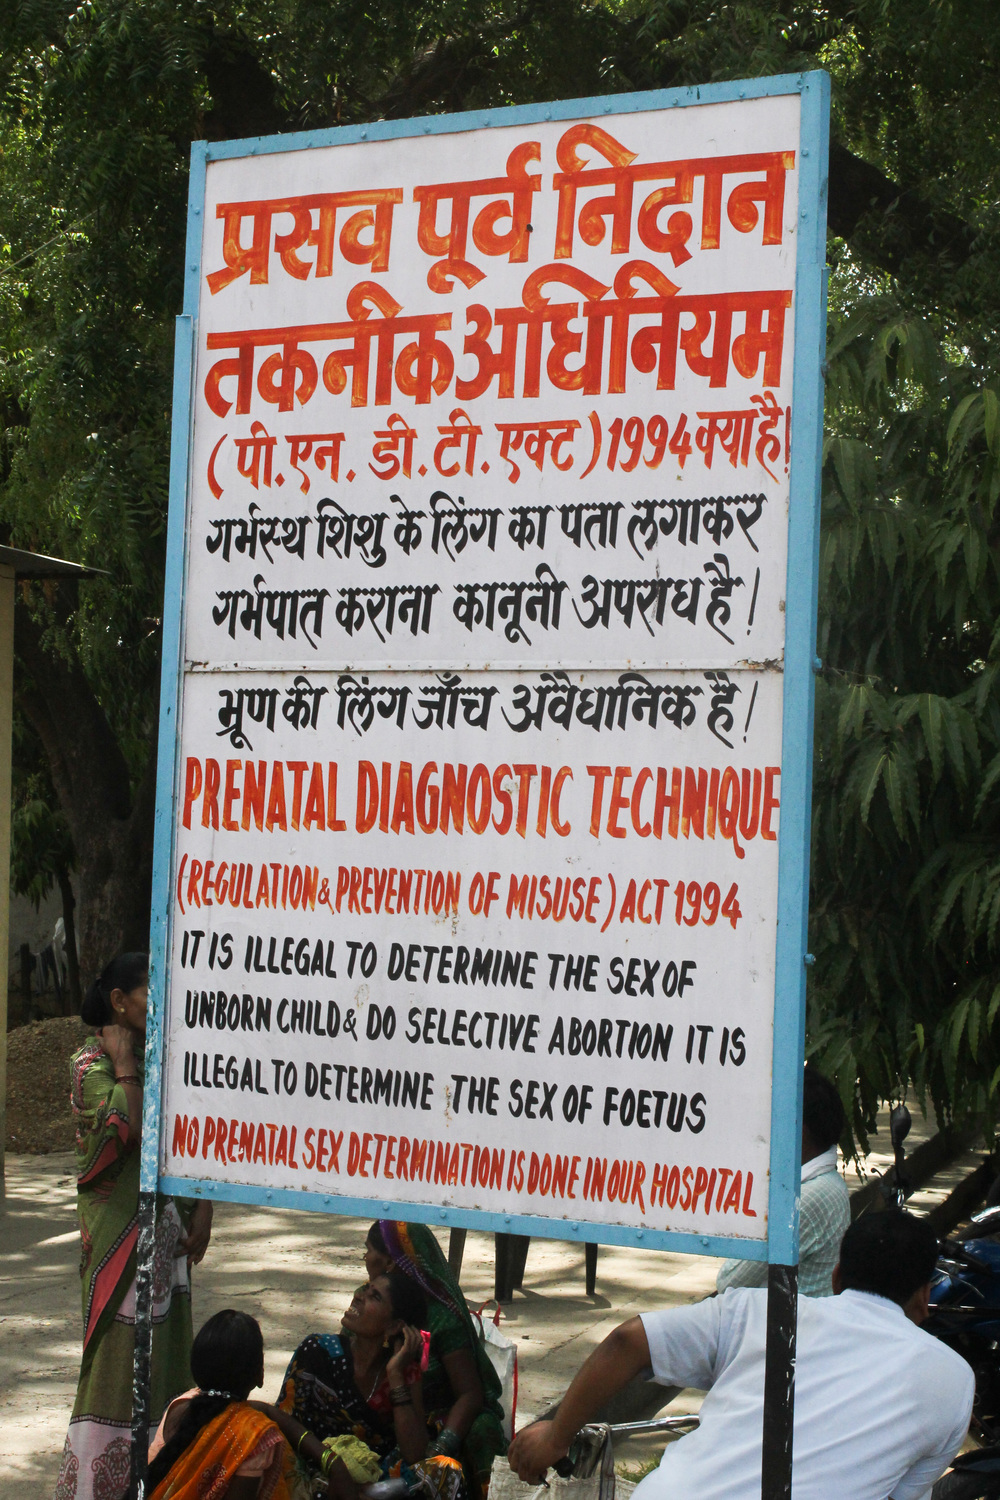 This sign, posted outside a Mission Hospital, illustrates the issues surrounding female children in India. Ultrasounds are regulated in India and it is illegal to find out the gender of the child before birth. The rationale for these laws is the high rate of female infanticide and gender biased abortions, particularly in rural areas.